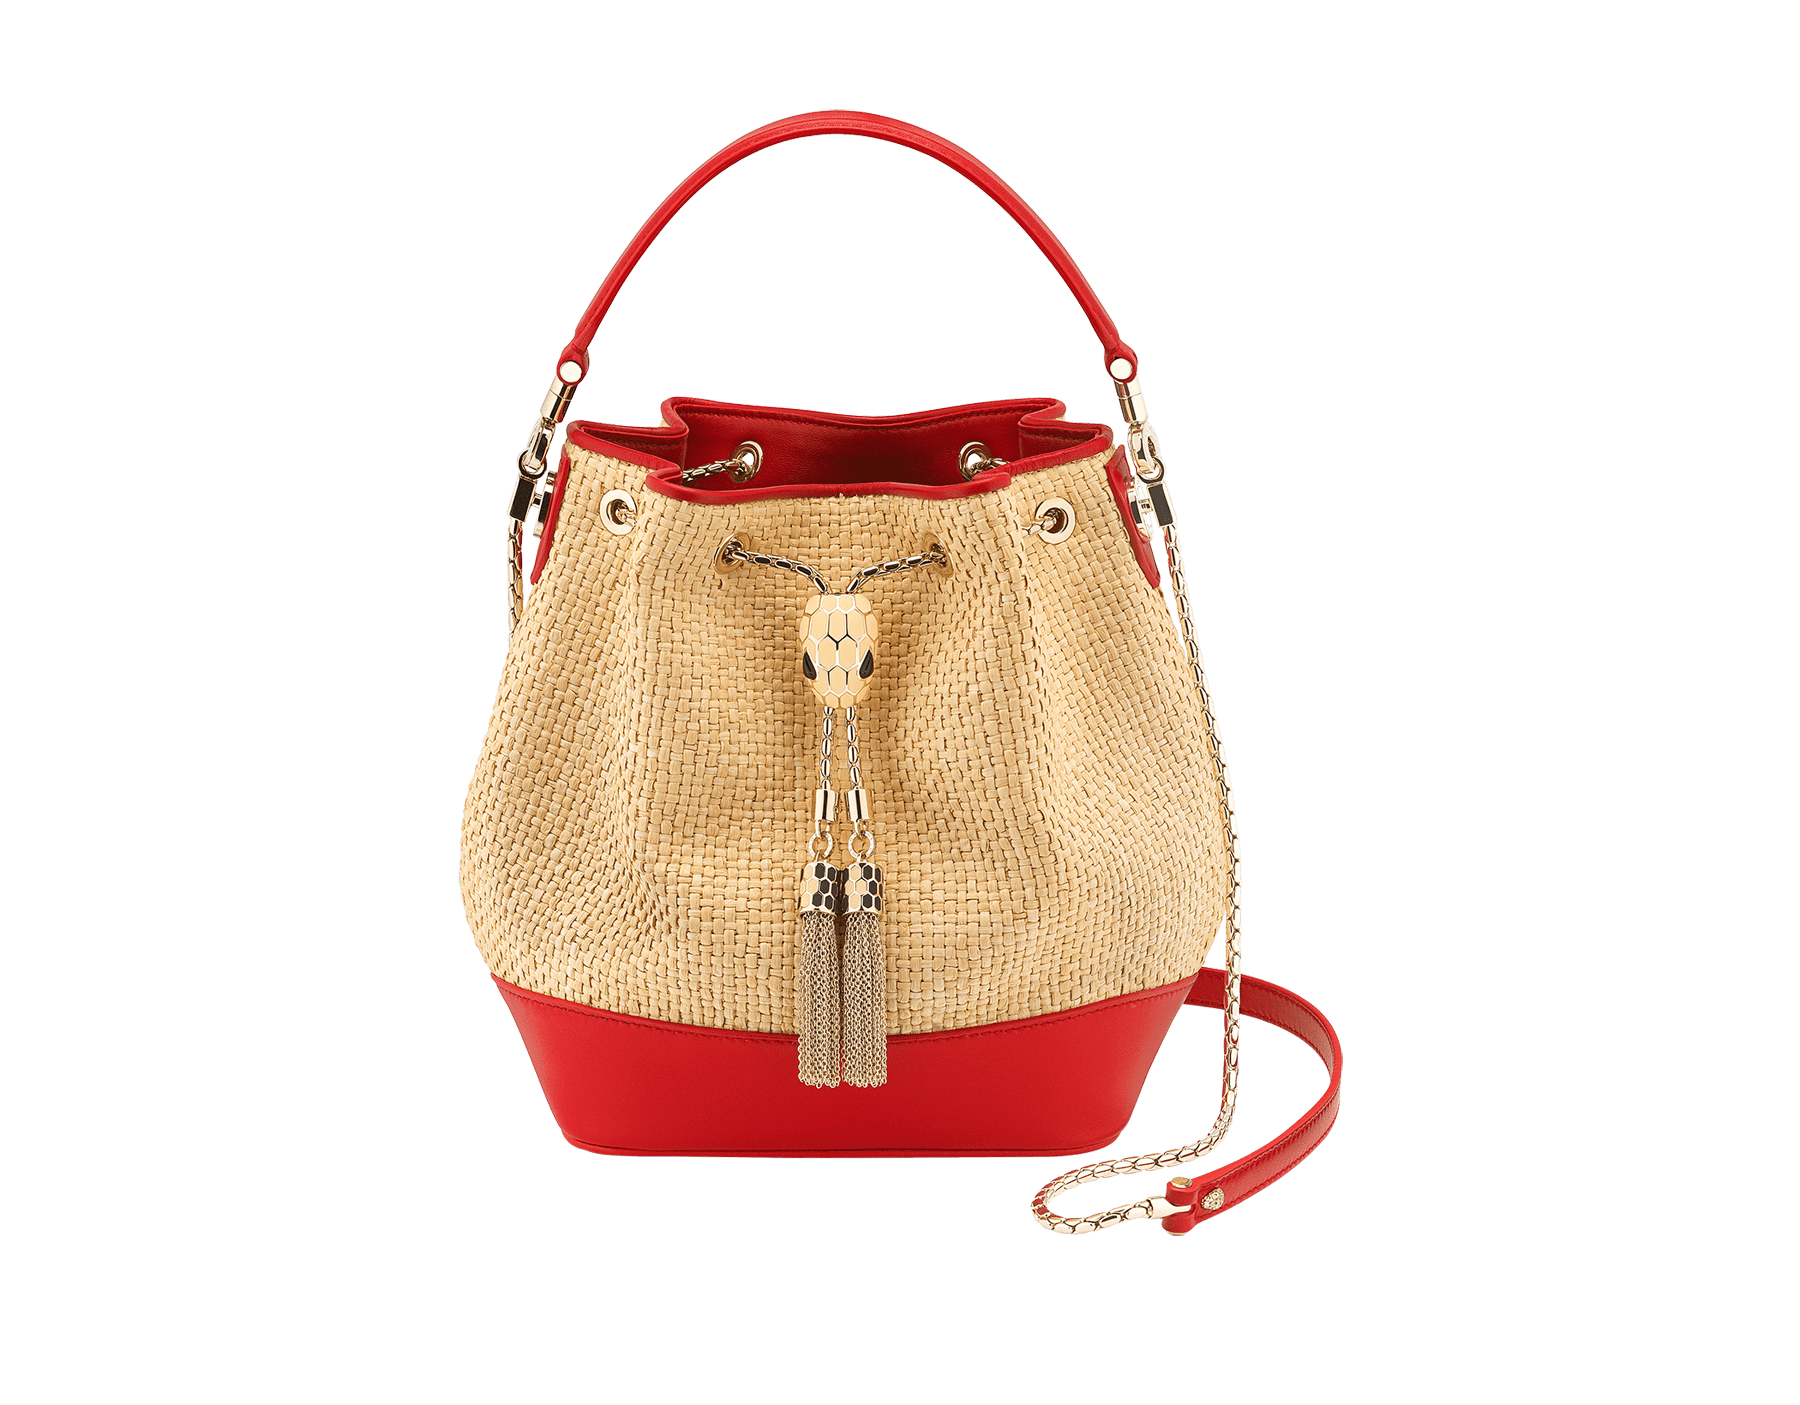 """Serpenti Forever"" small bucket bag in beige raffia and Carmine Jasper red calfskin, with Carmine Jasper red nappa leather internal lining. Alluring light gold-plated brass snakehead closure enhanced with full matte Natural beige enamel and black onyx eyes. 290959 image 1"